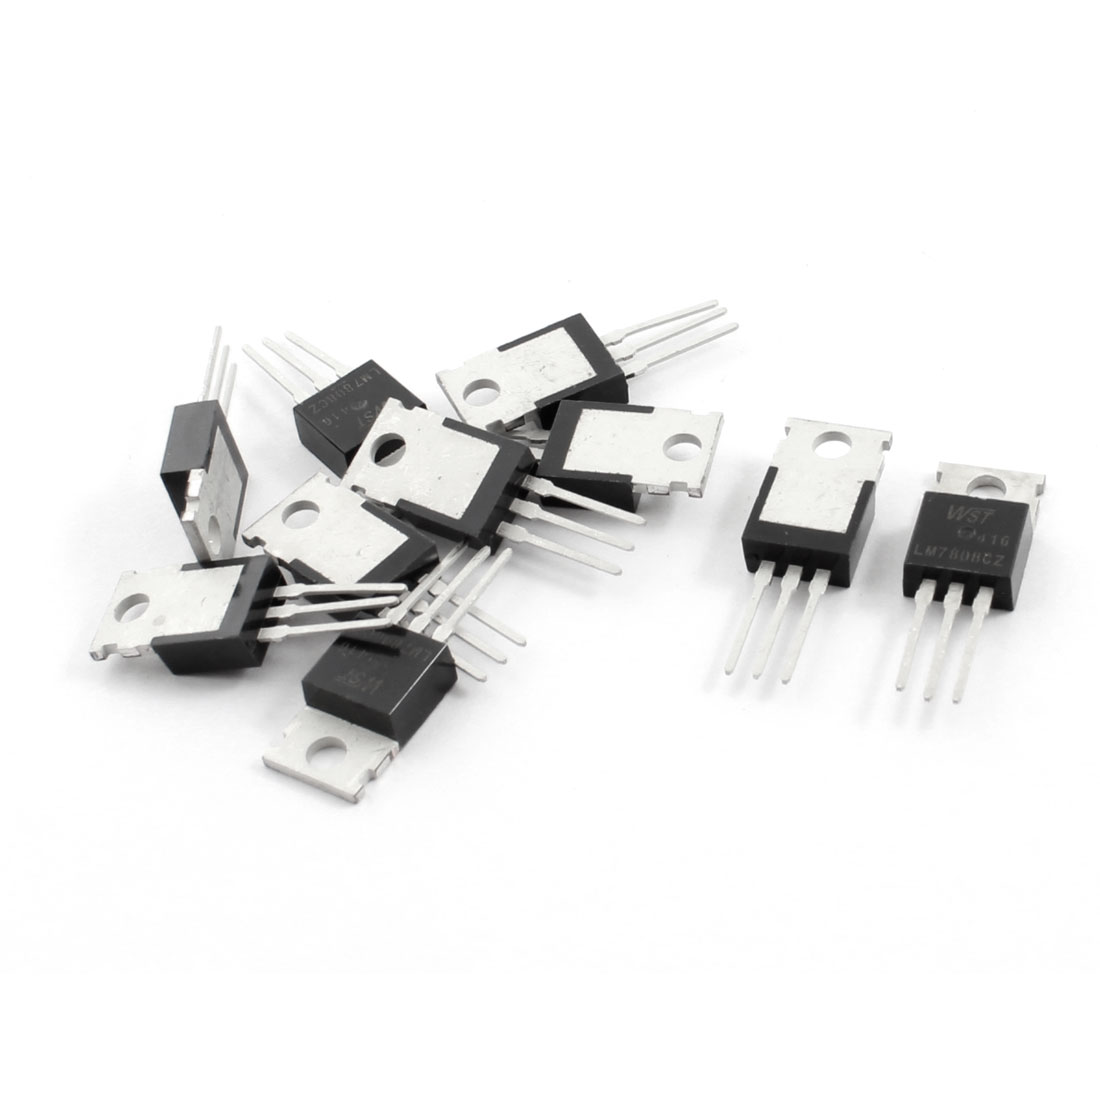 10Pcs LM7806CZ DC 8V 1.5A Three Terminals Through Hole Mount Positive Voltage Regulator TO-220